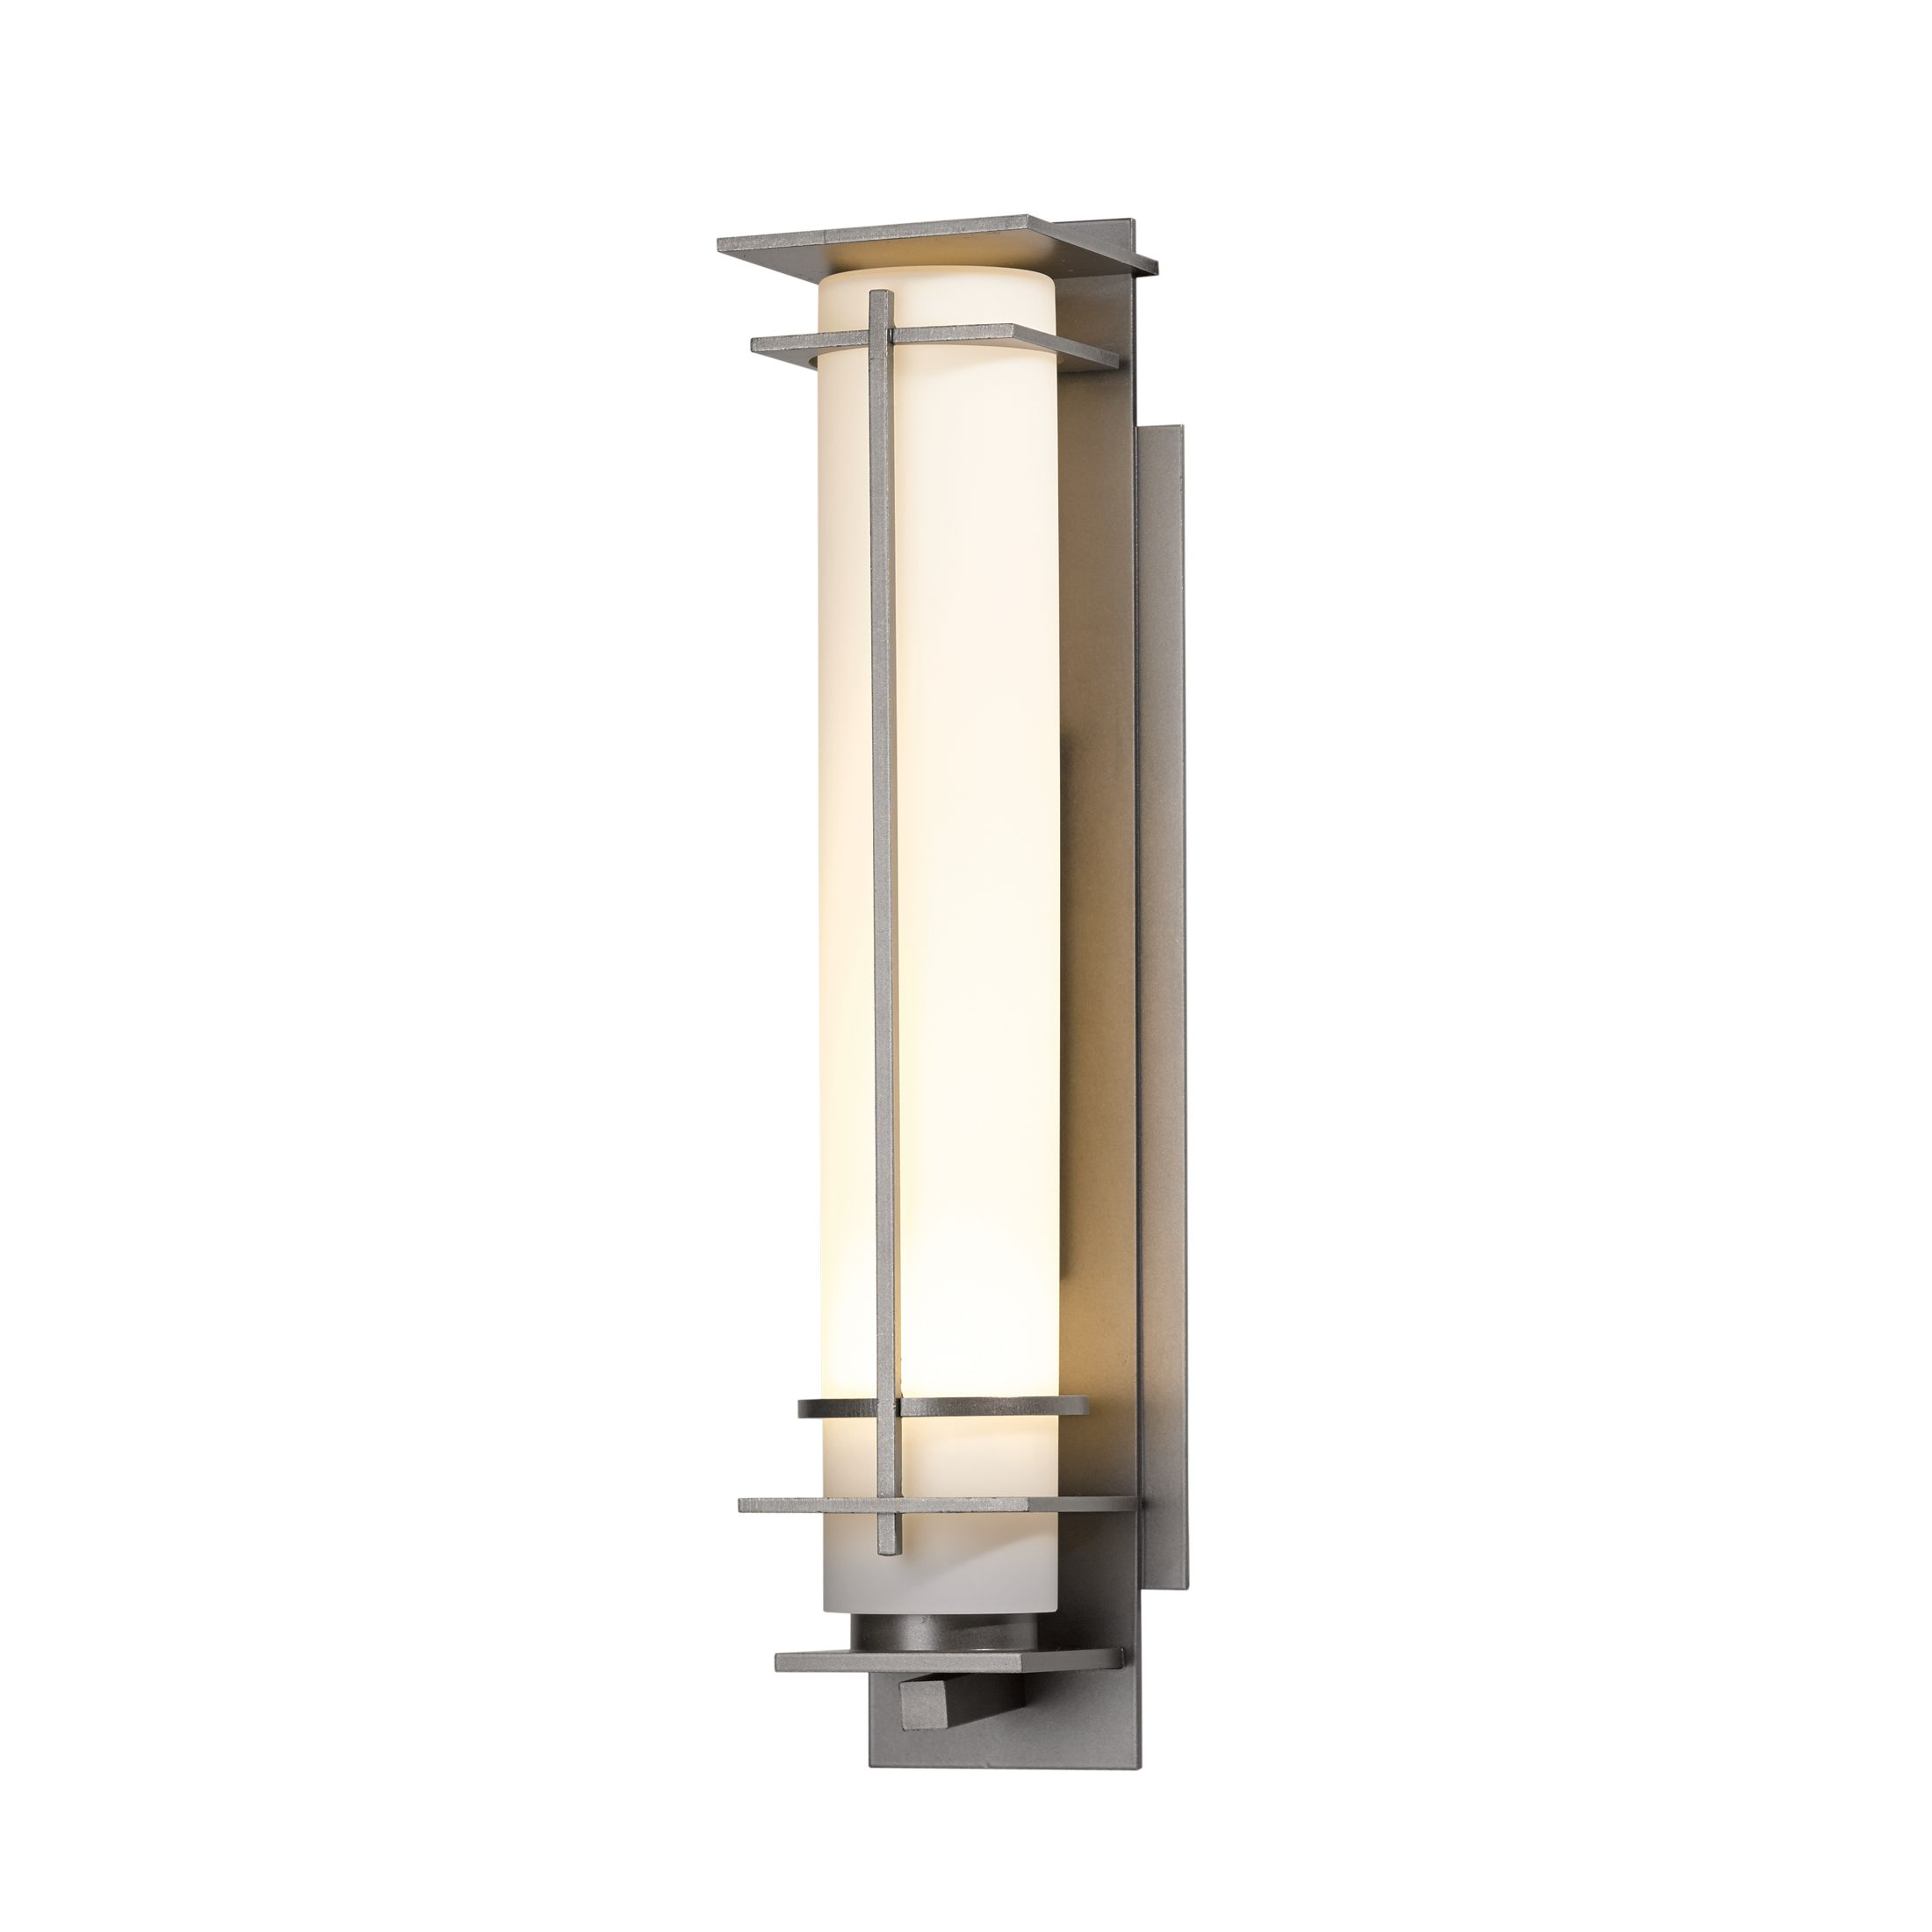 Thumbnail for After Hours Outdoor Sconce